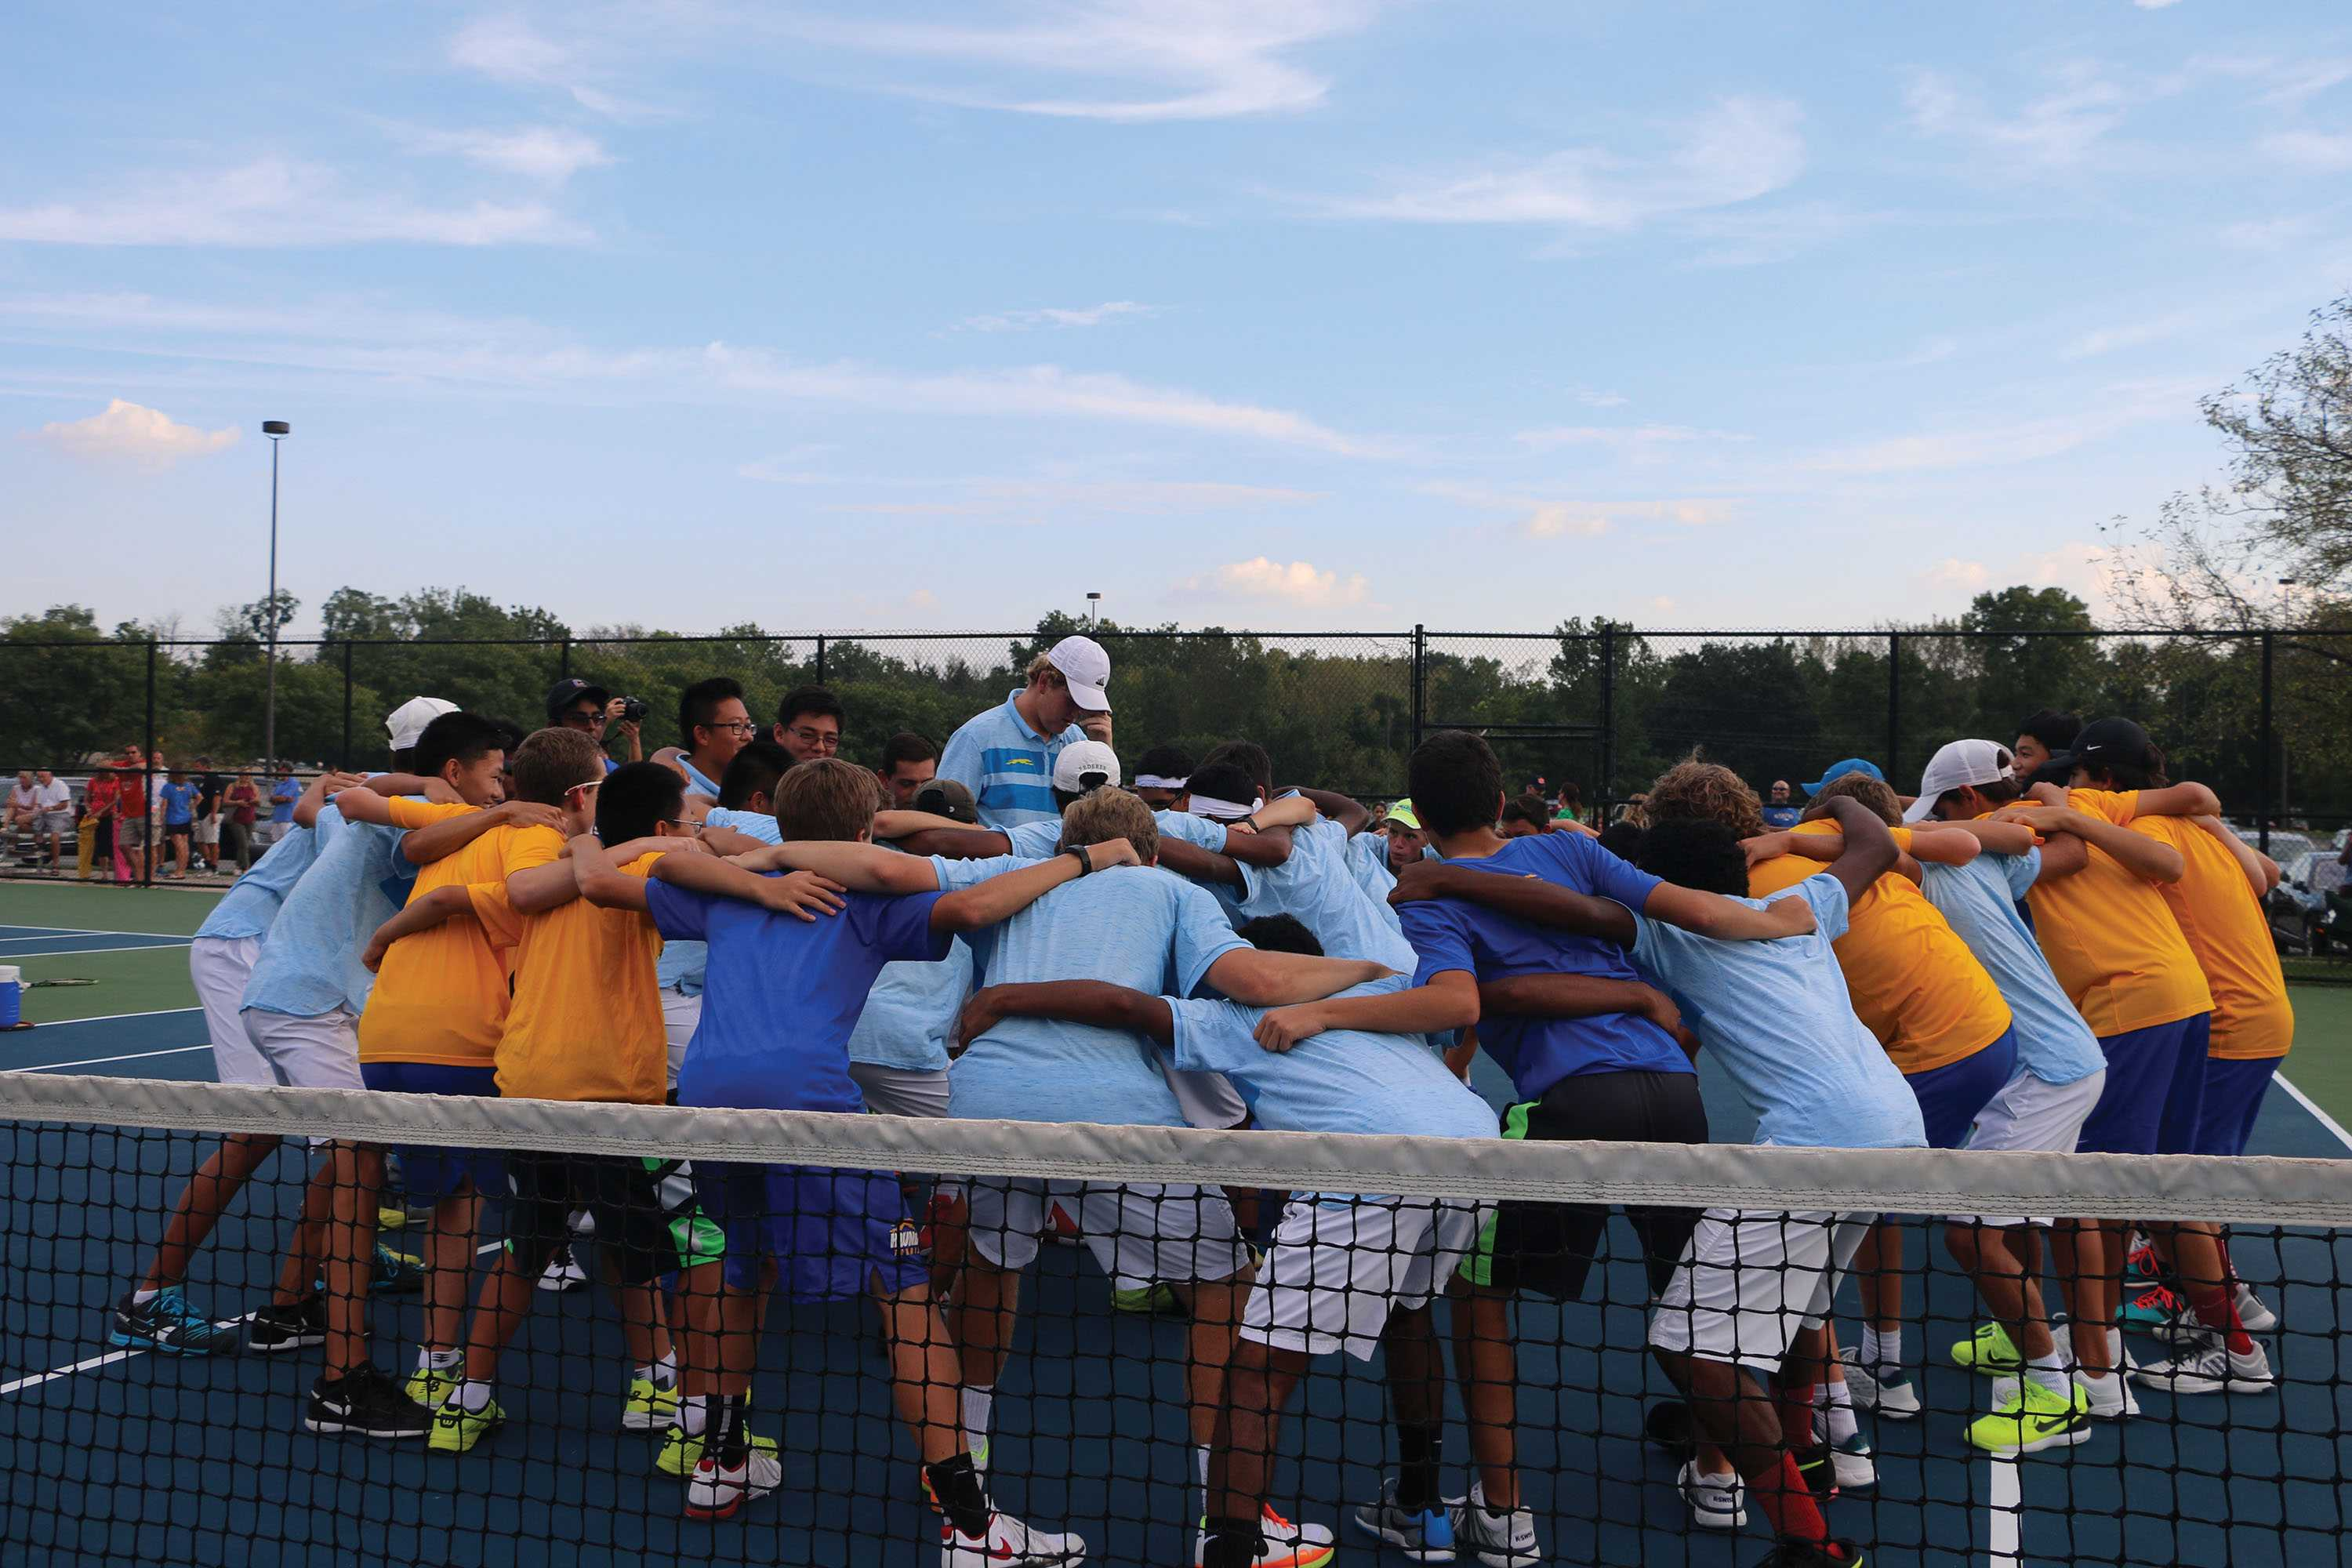 """TENNIS TOGETHERNESS:  The tennis team huddles together before a match against Homestead High School. Ethan McAndrews, varsity tennis player and senior, said, """"Before we go out and play, we all get in a circle together and break it down as a team."""" McAndrews said it gets the team motivated and also assists in the focusing of the team."""